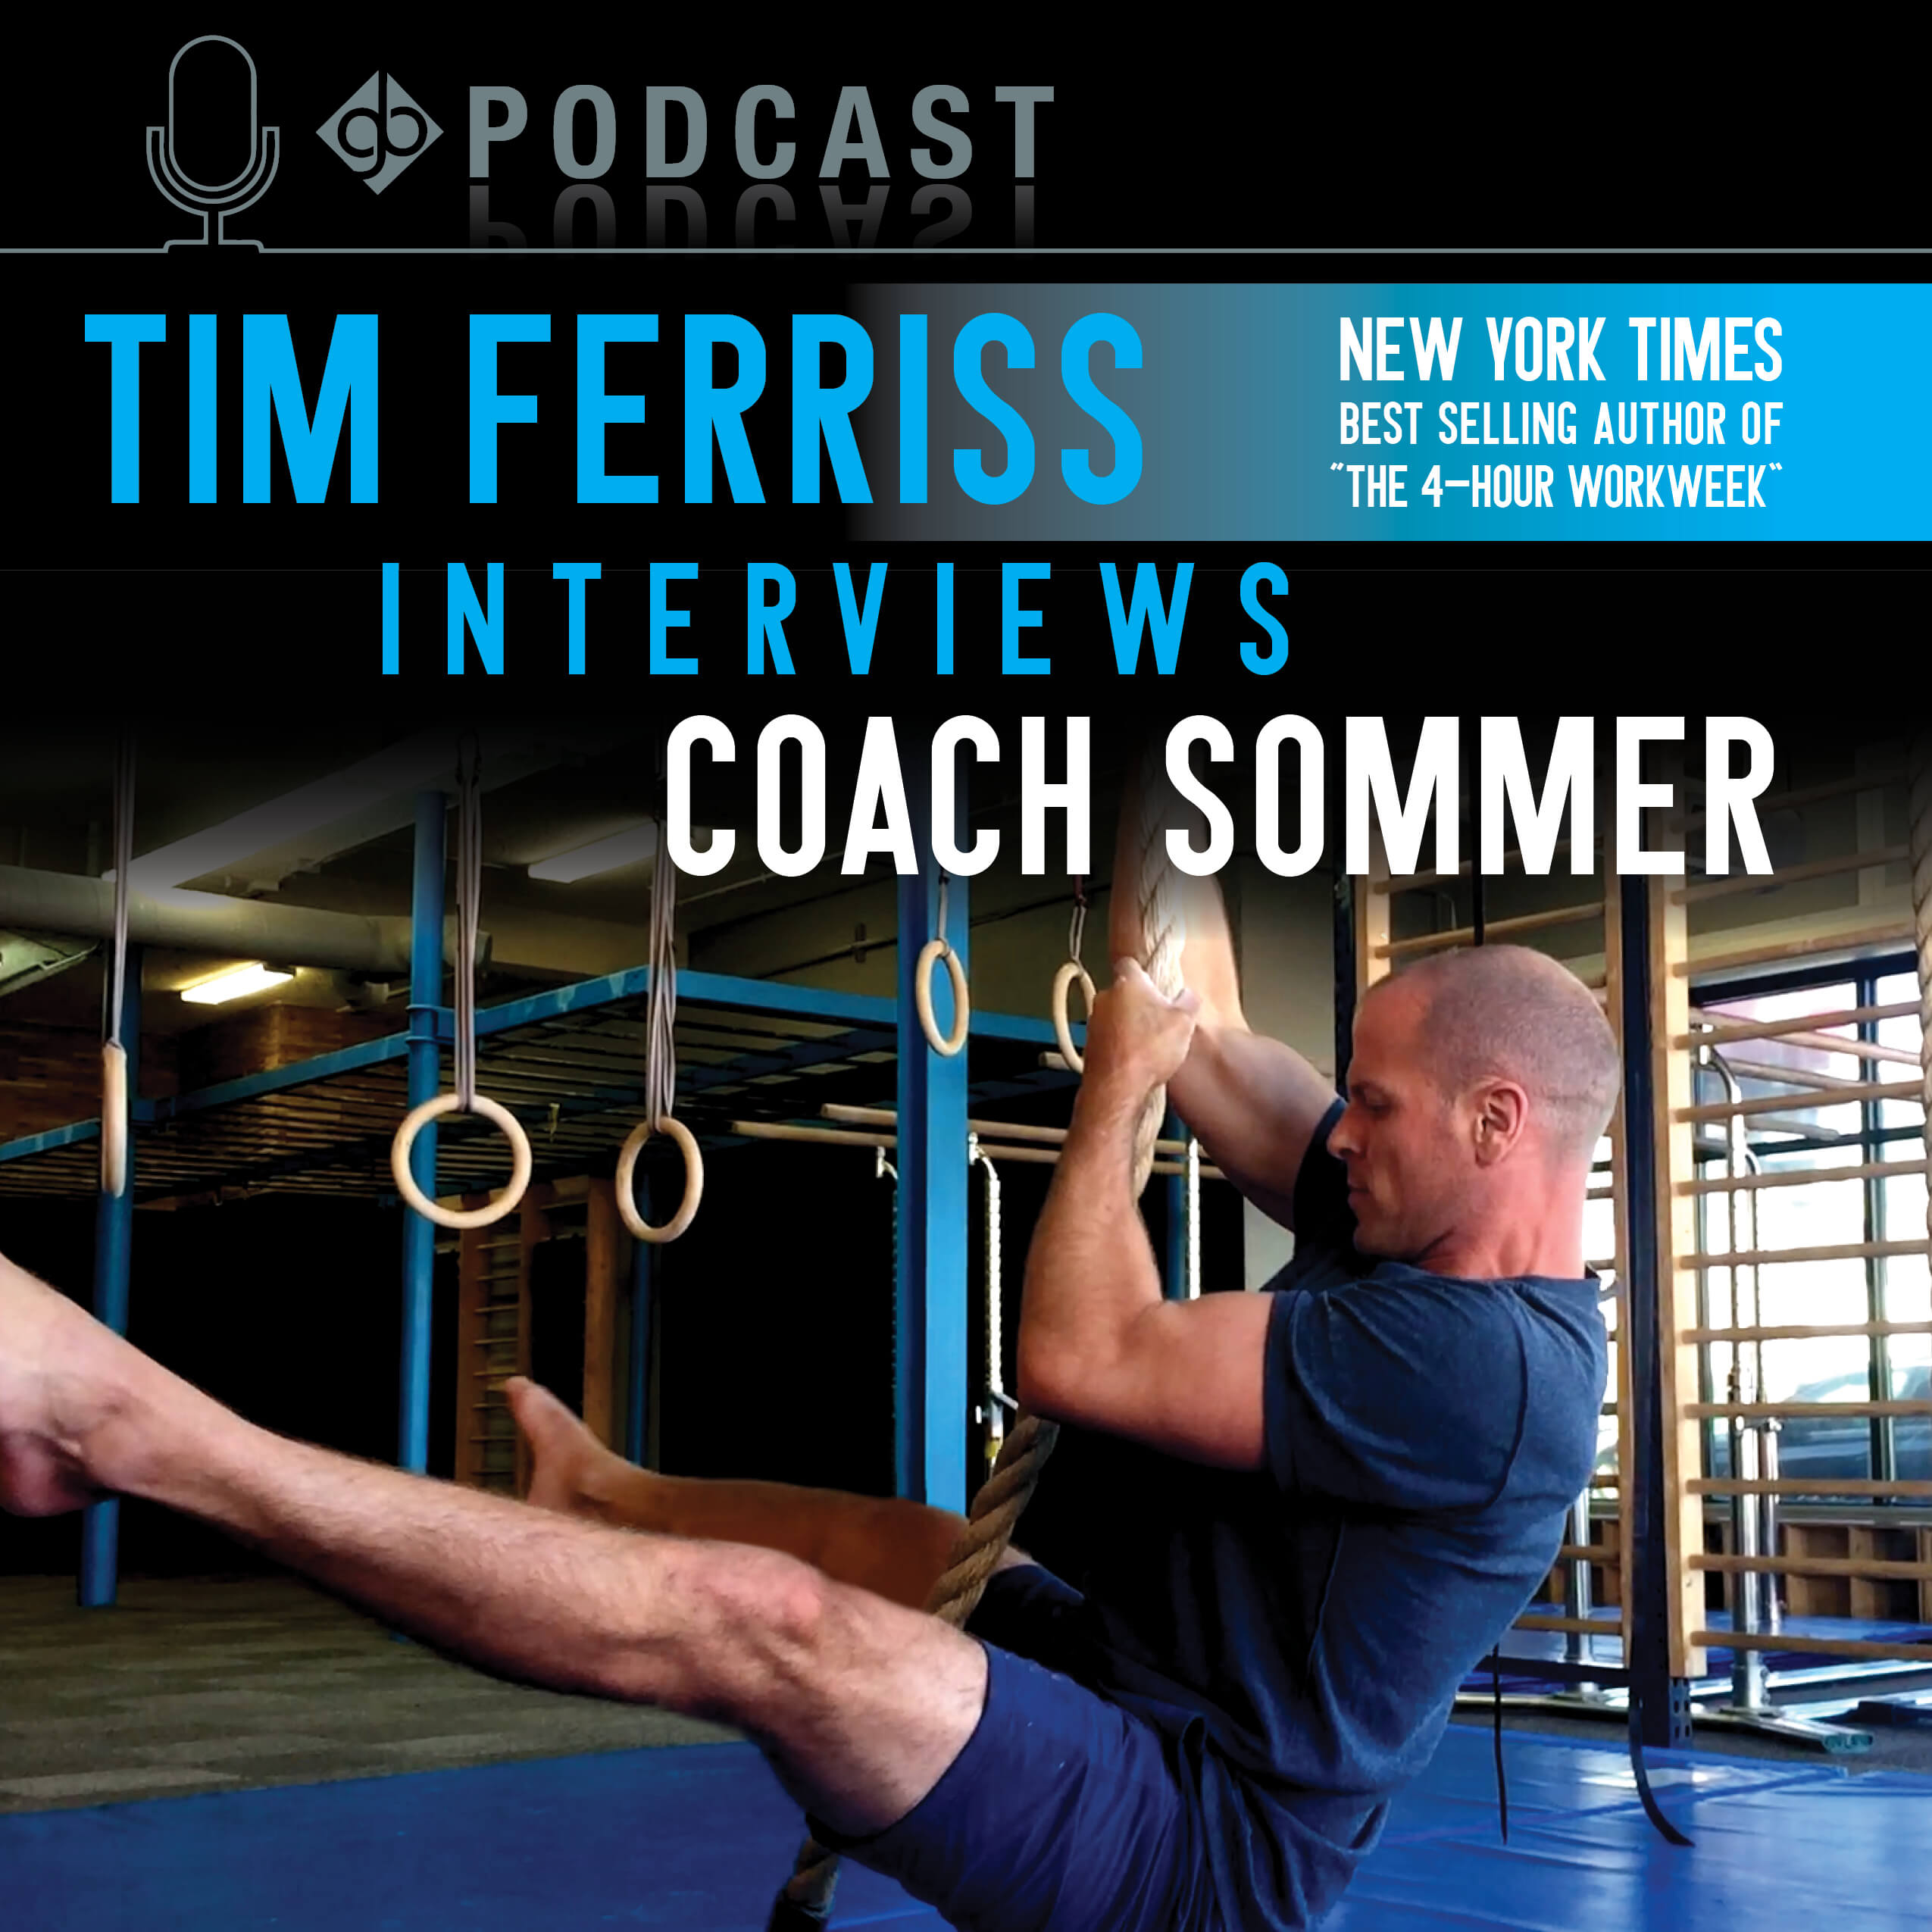 Podcast: Tim Ferriss interviews Coach Sommer